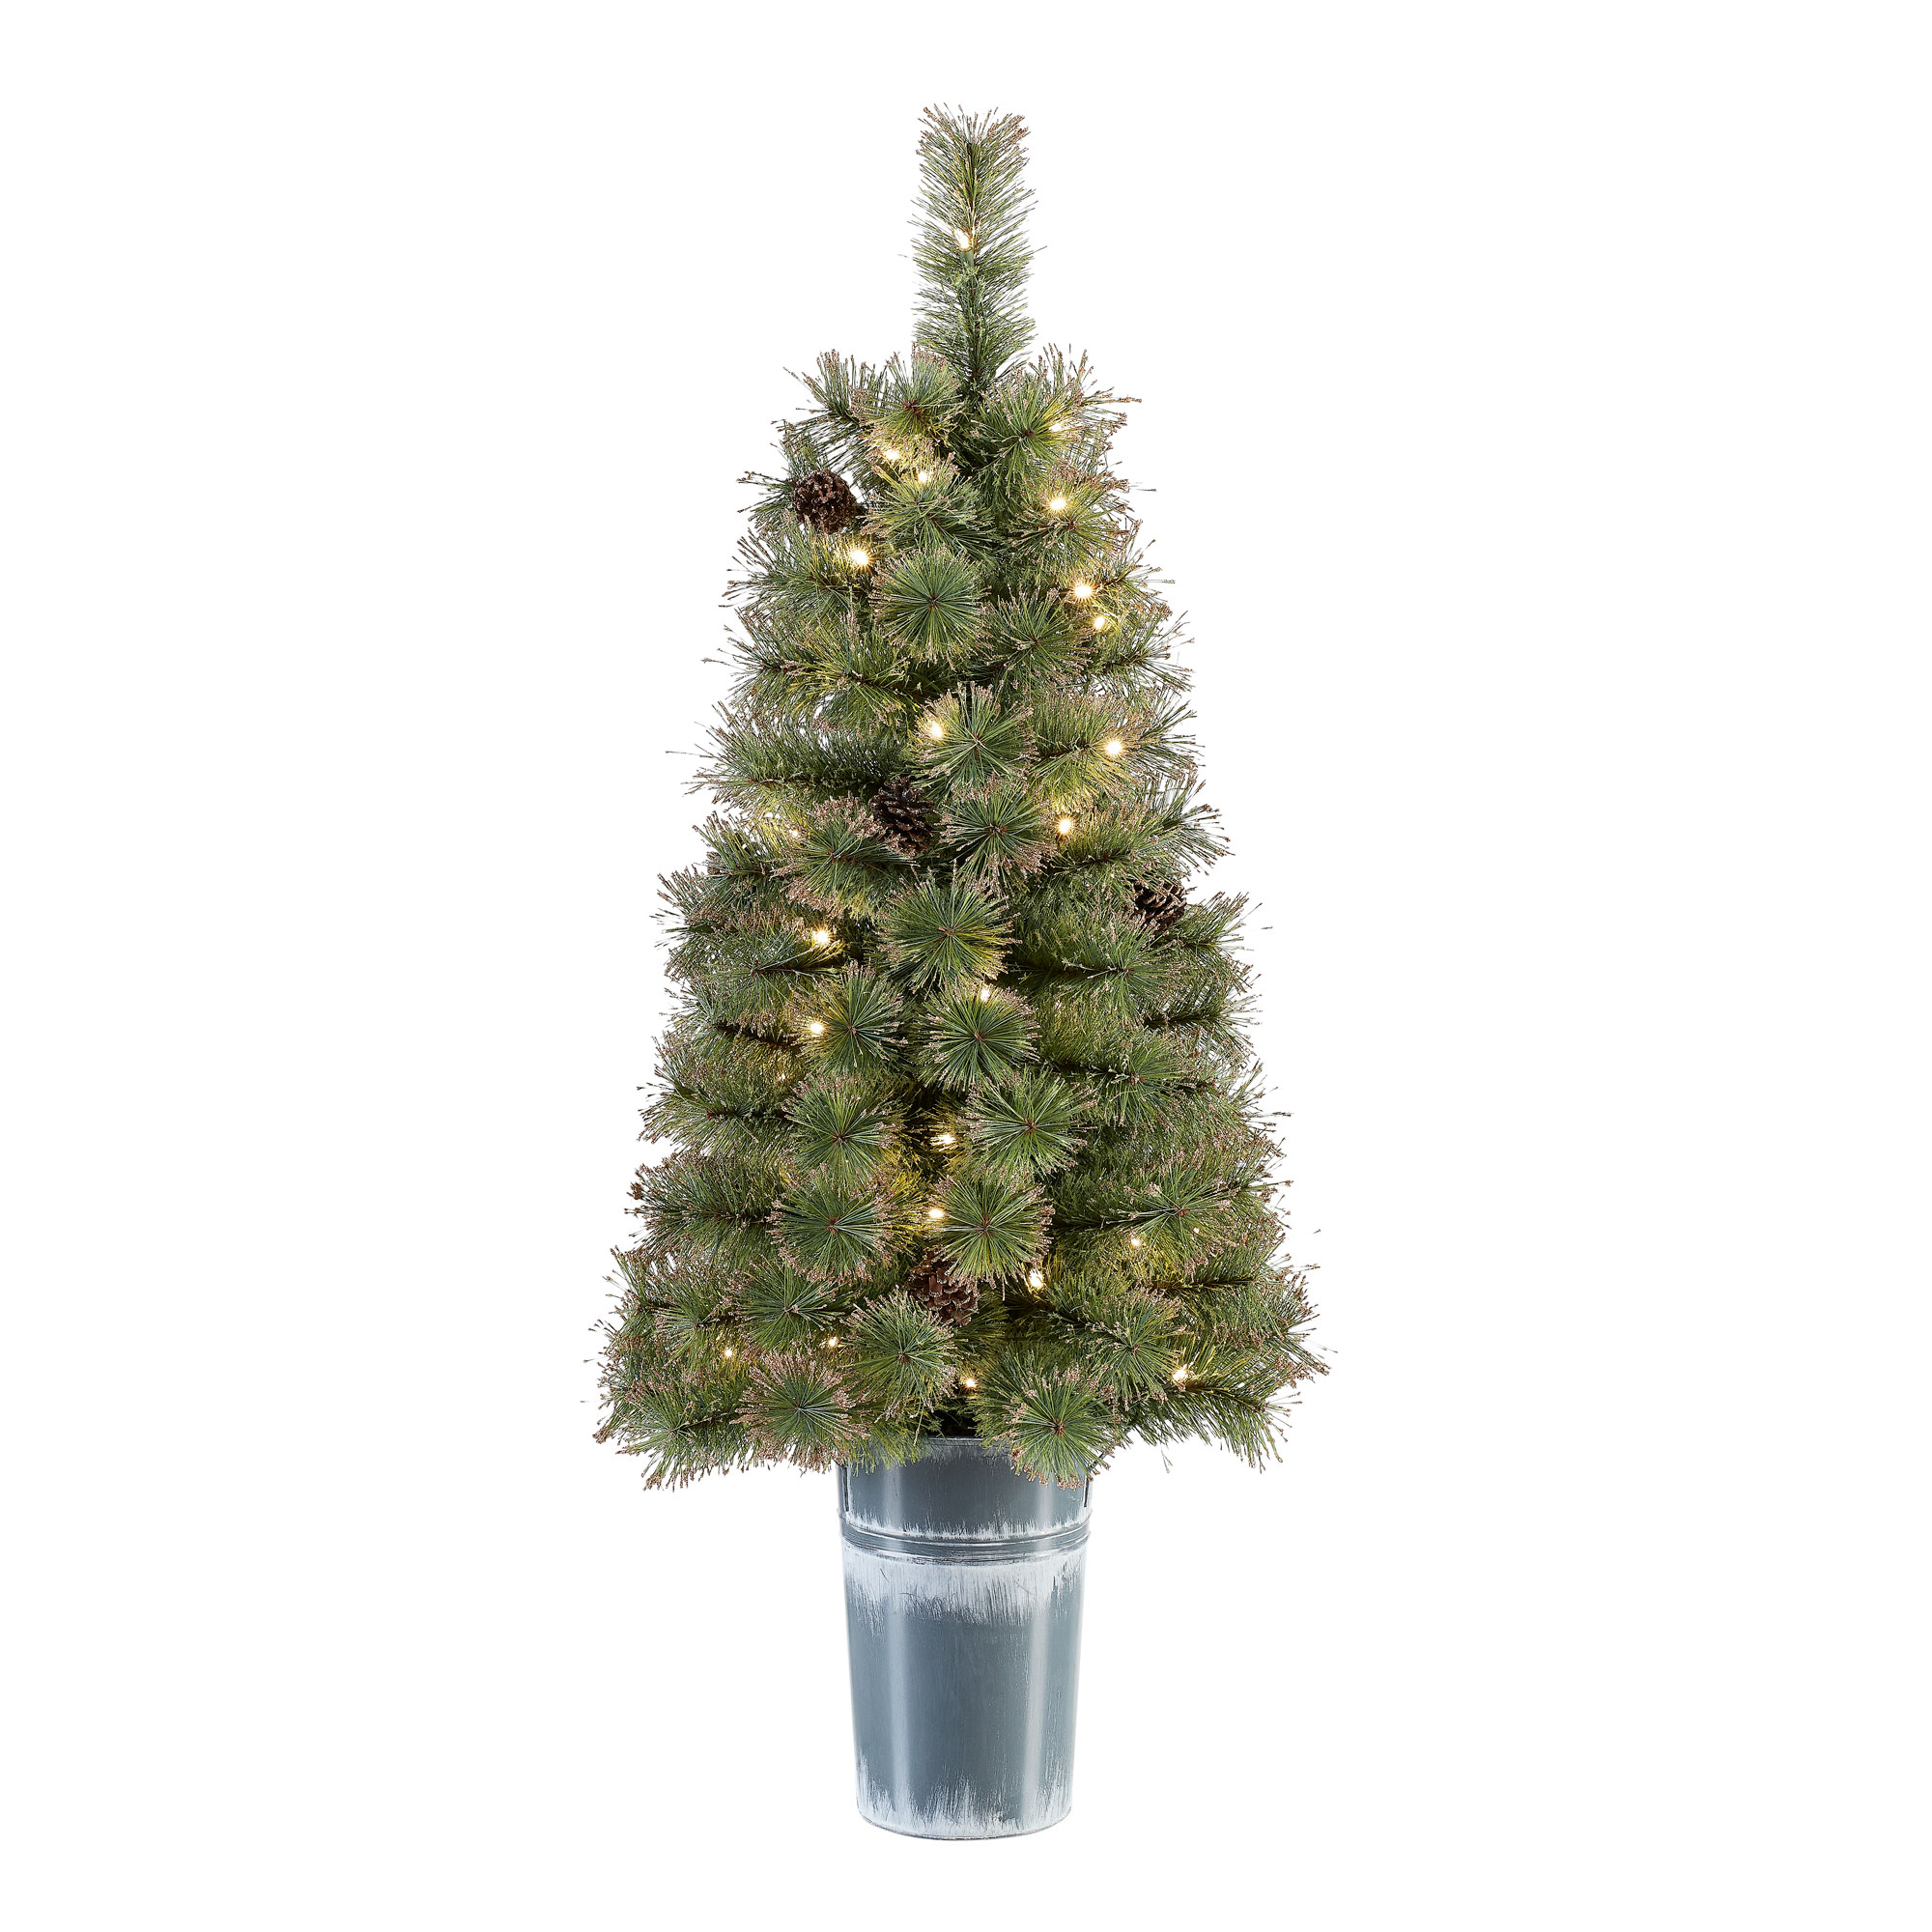 Holiday Time Pre-Lit LED Gold Glitter Tipped Potted Tree Christmas Decoration, 4', Warm White